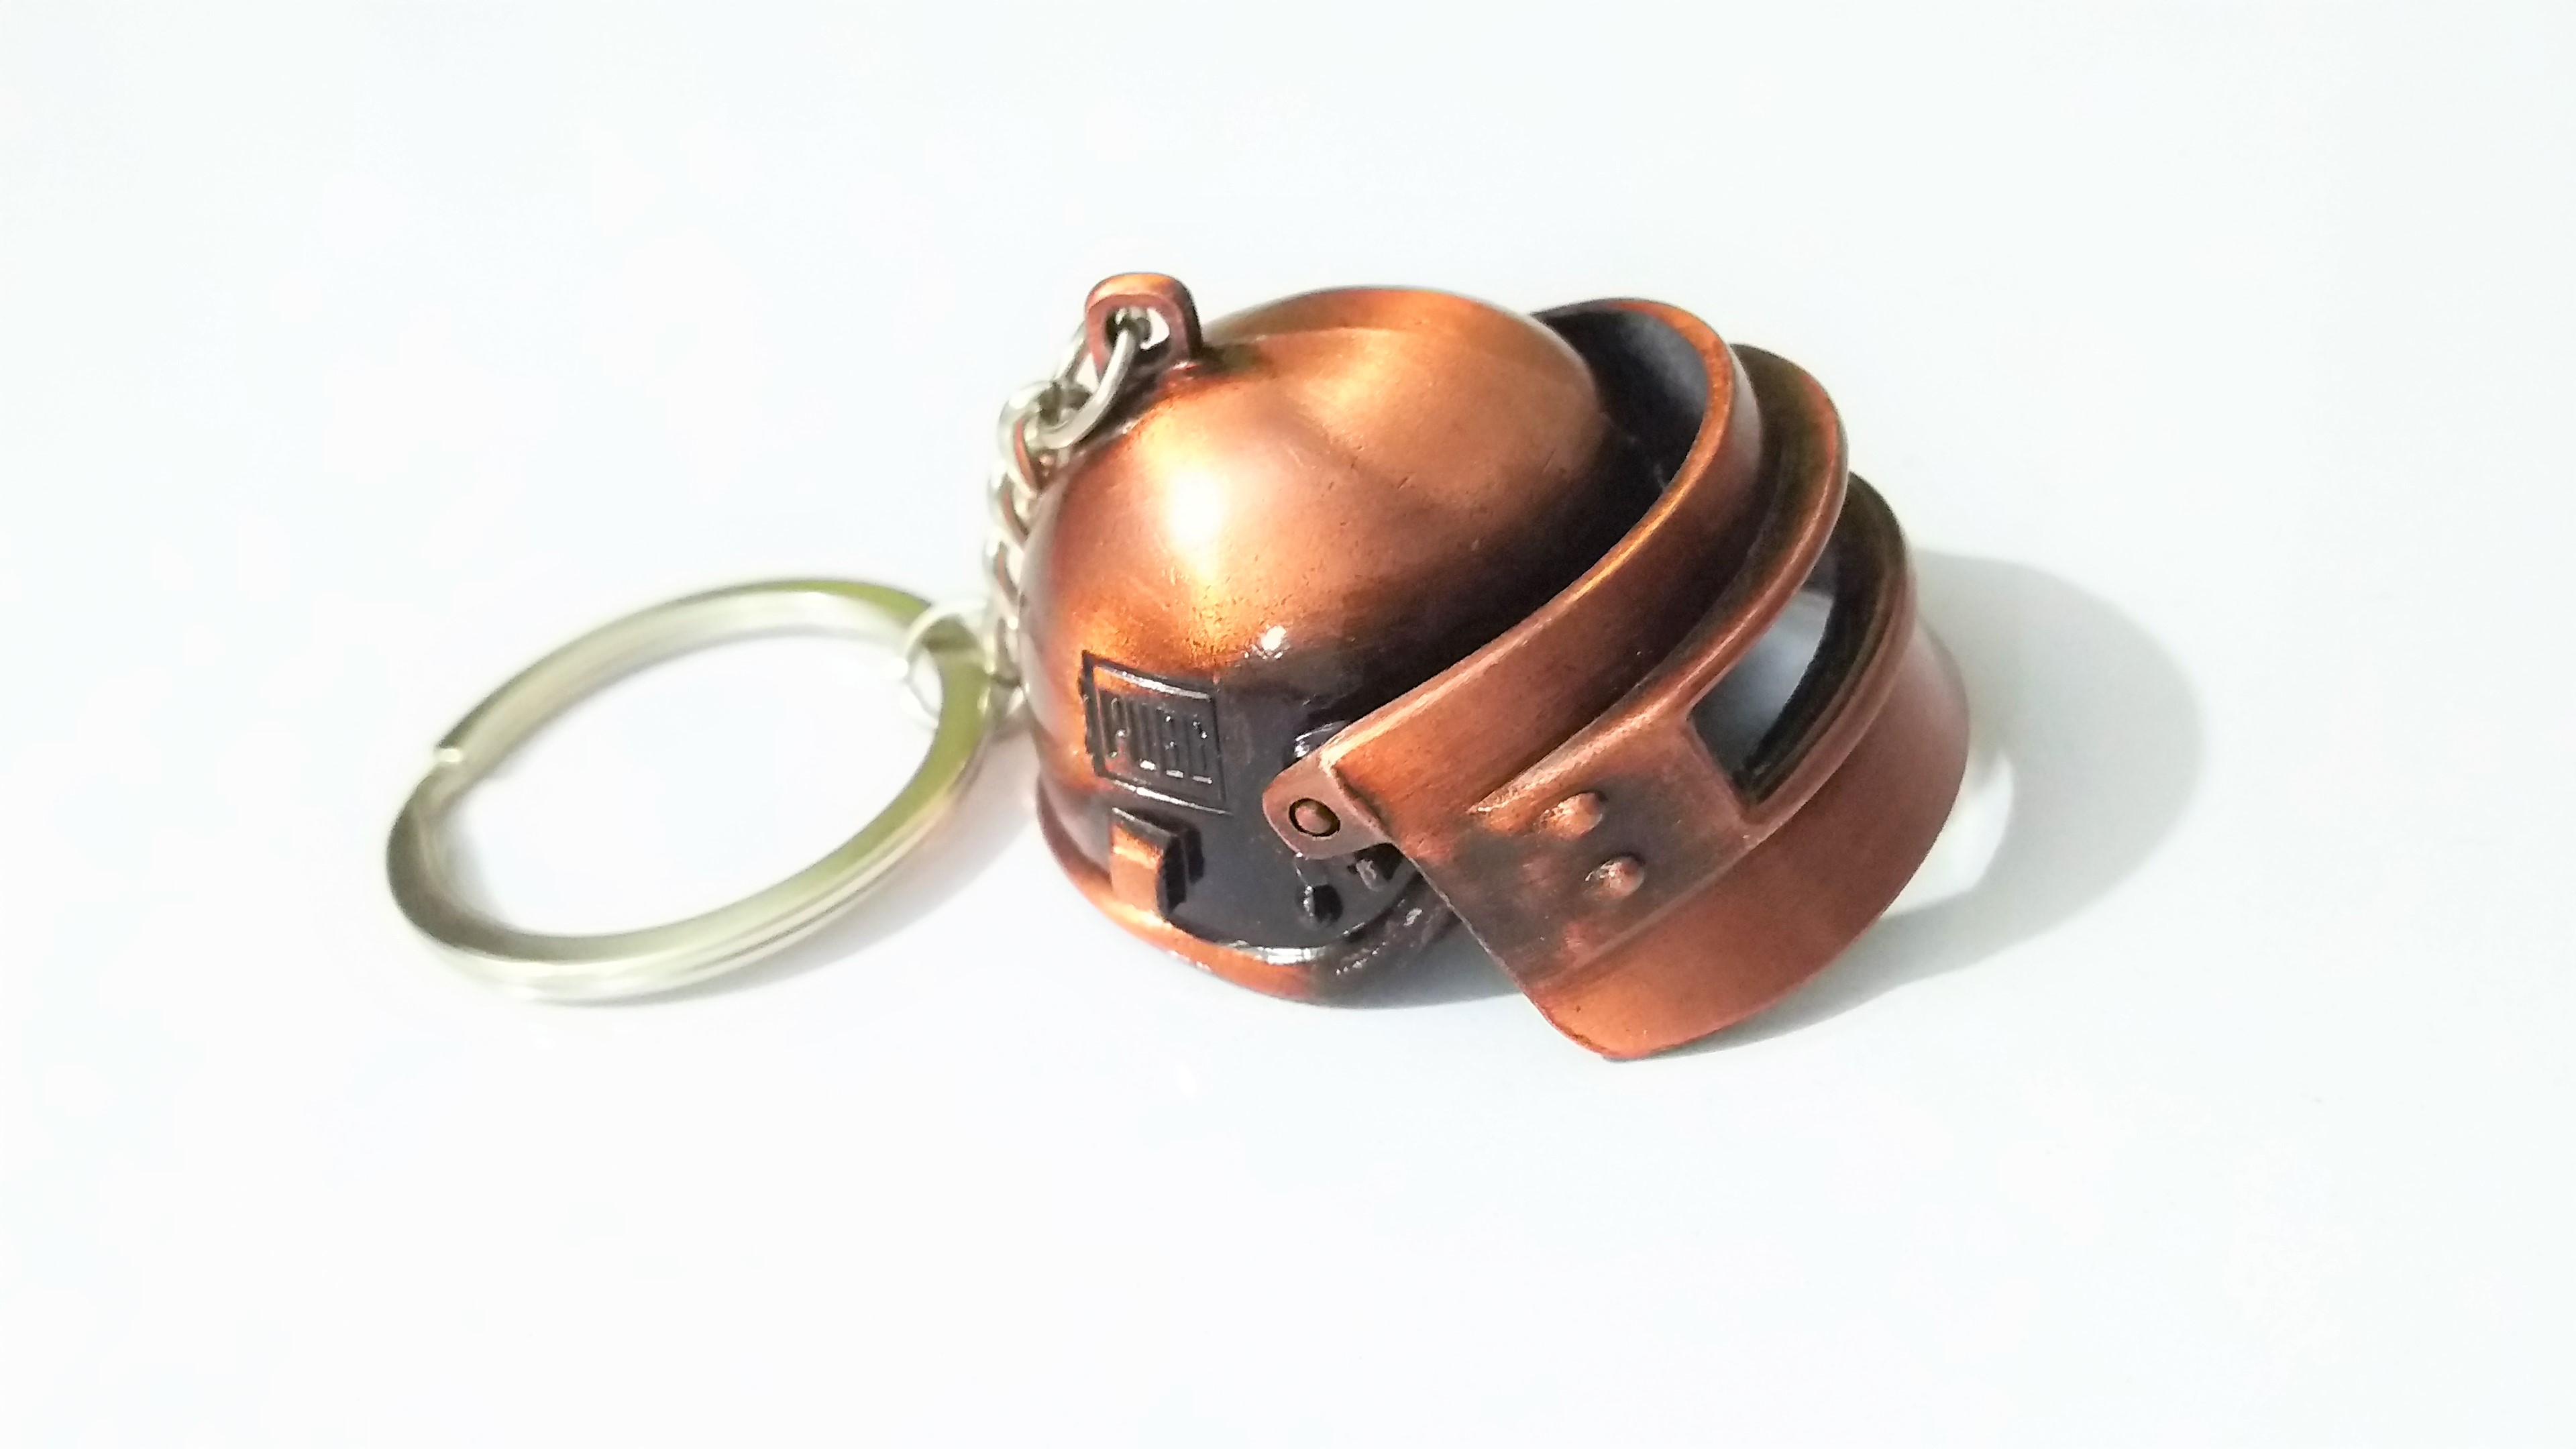 Orange Helmet - PUBG level 3 - Key Chain